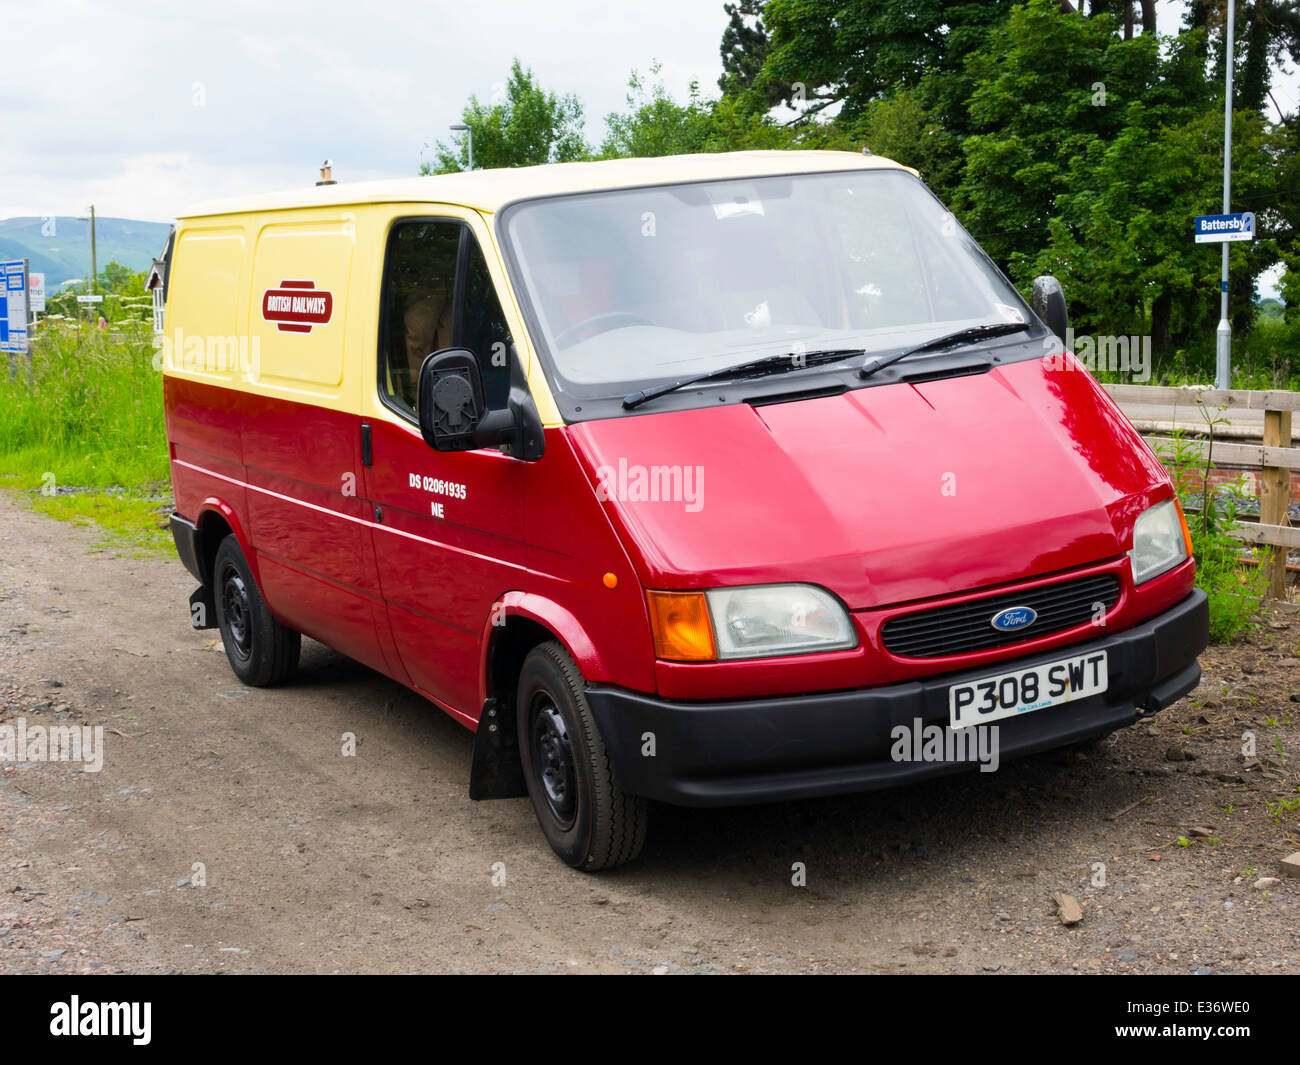 1996/7 registered Ford Transit van in red and yellow ...